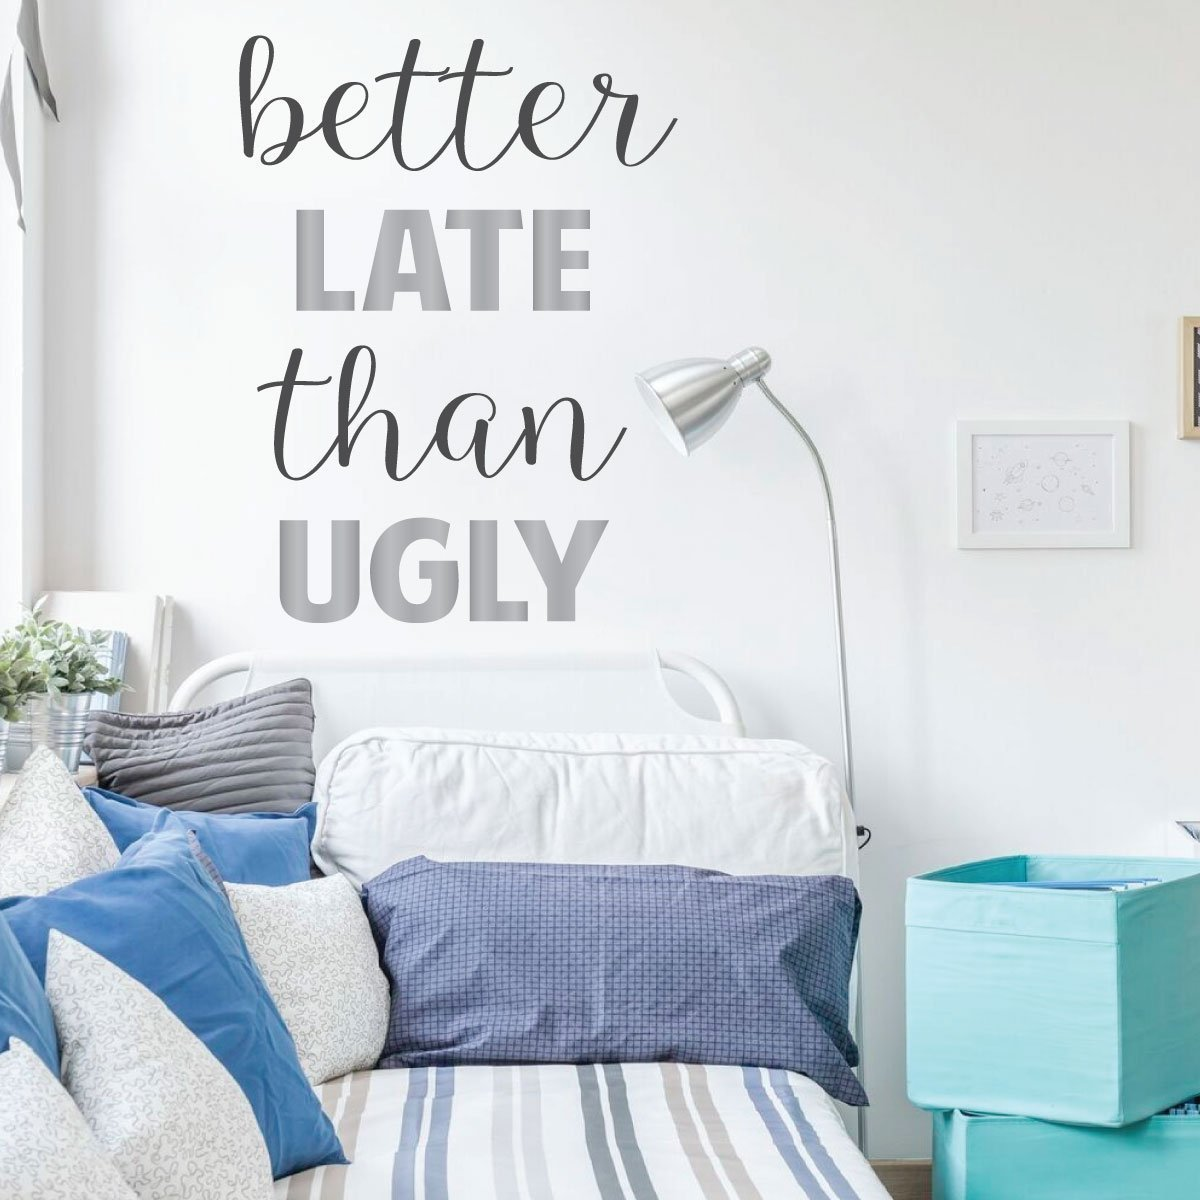 Dorm Wall Decor   Vinyl Wall Decal   Better Late Than Ugly